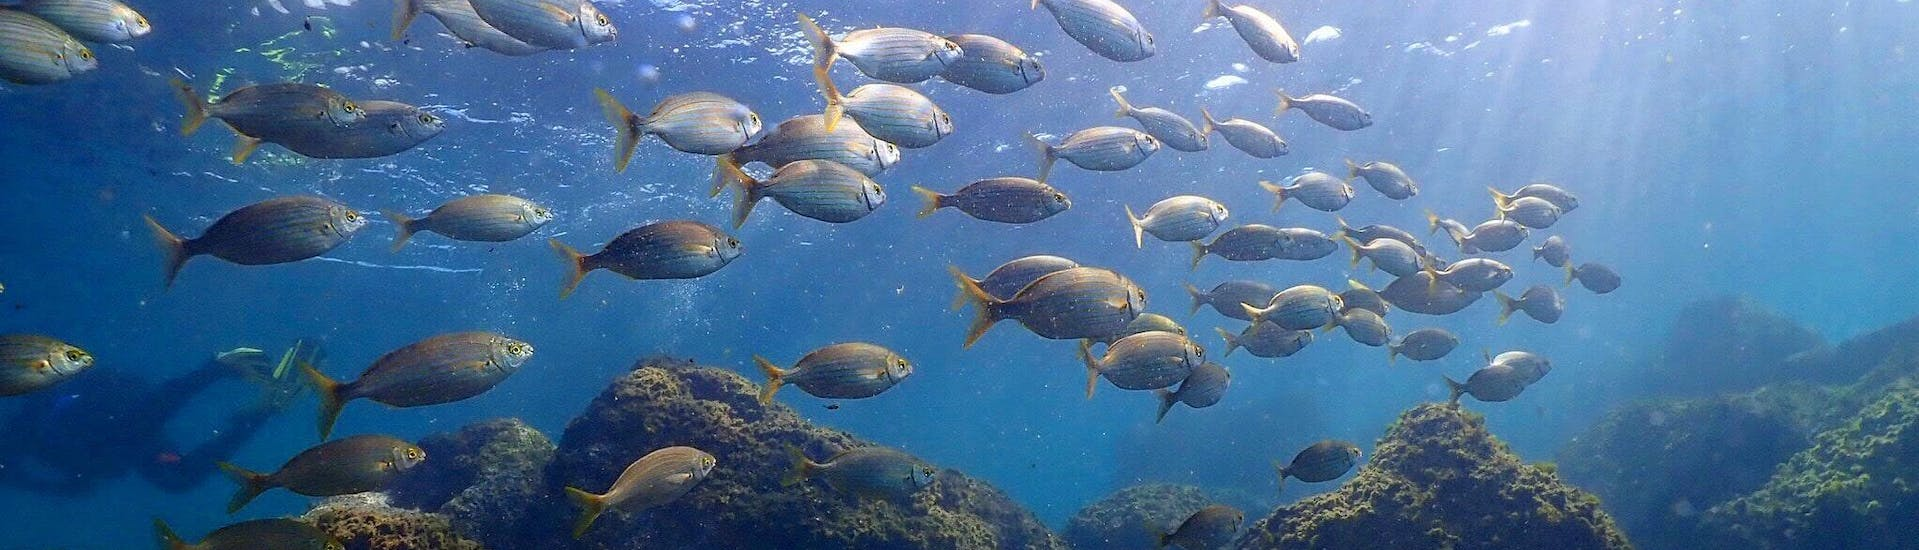 Scuba Diving - Guided Dives in Barcelona